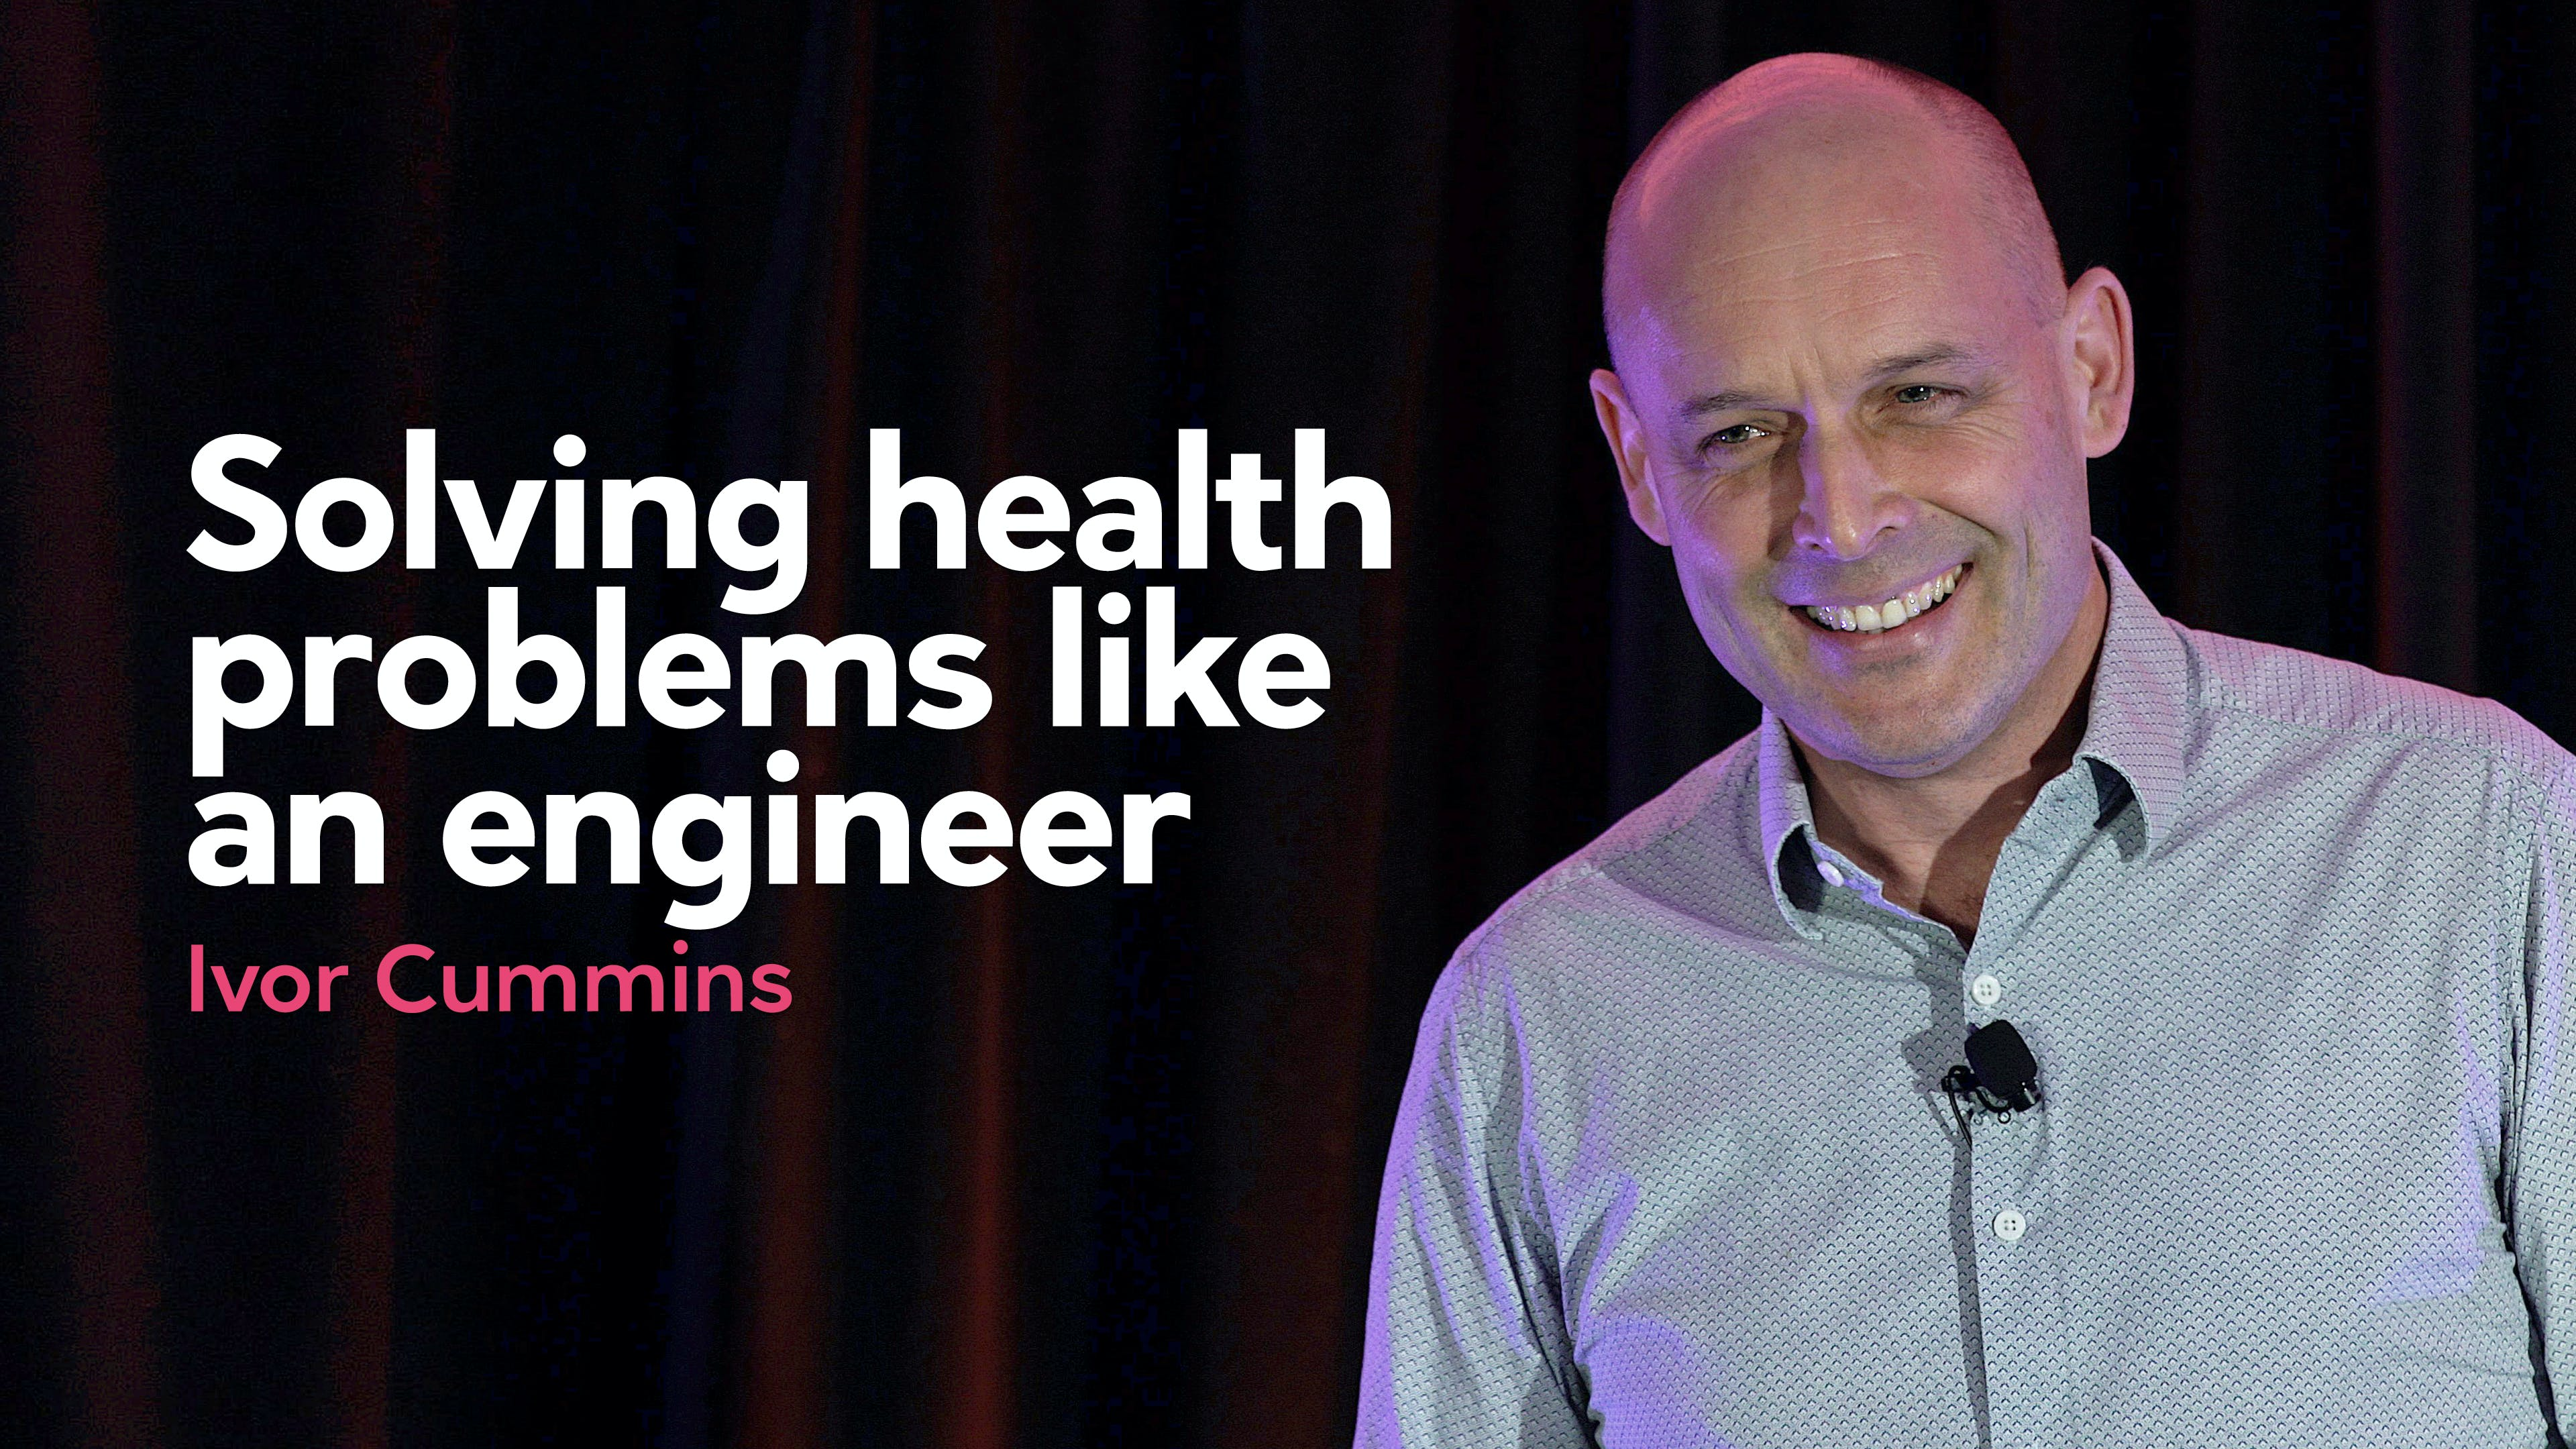 Solving health problems like an engineer